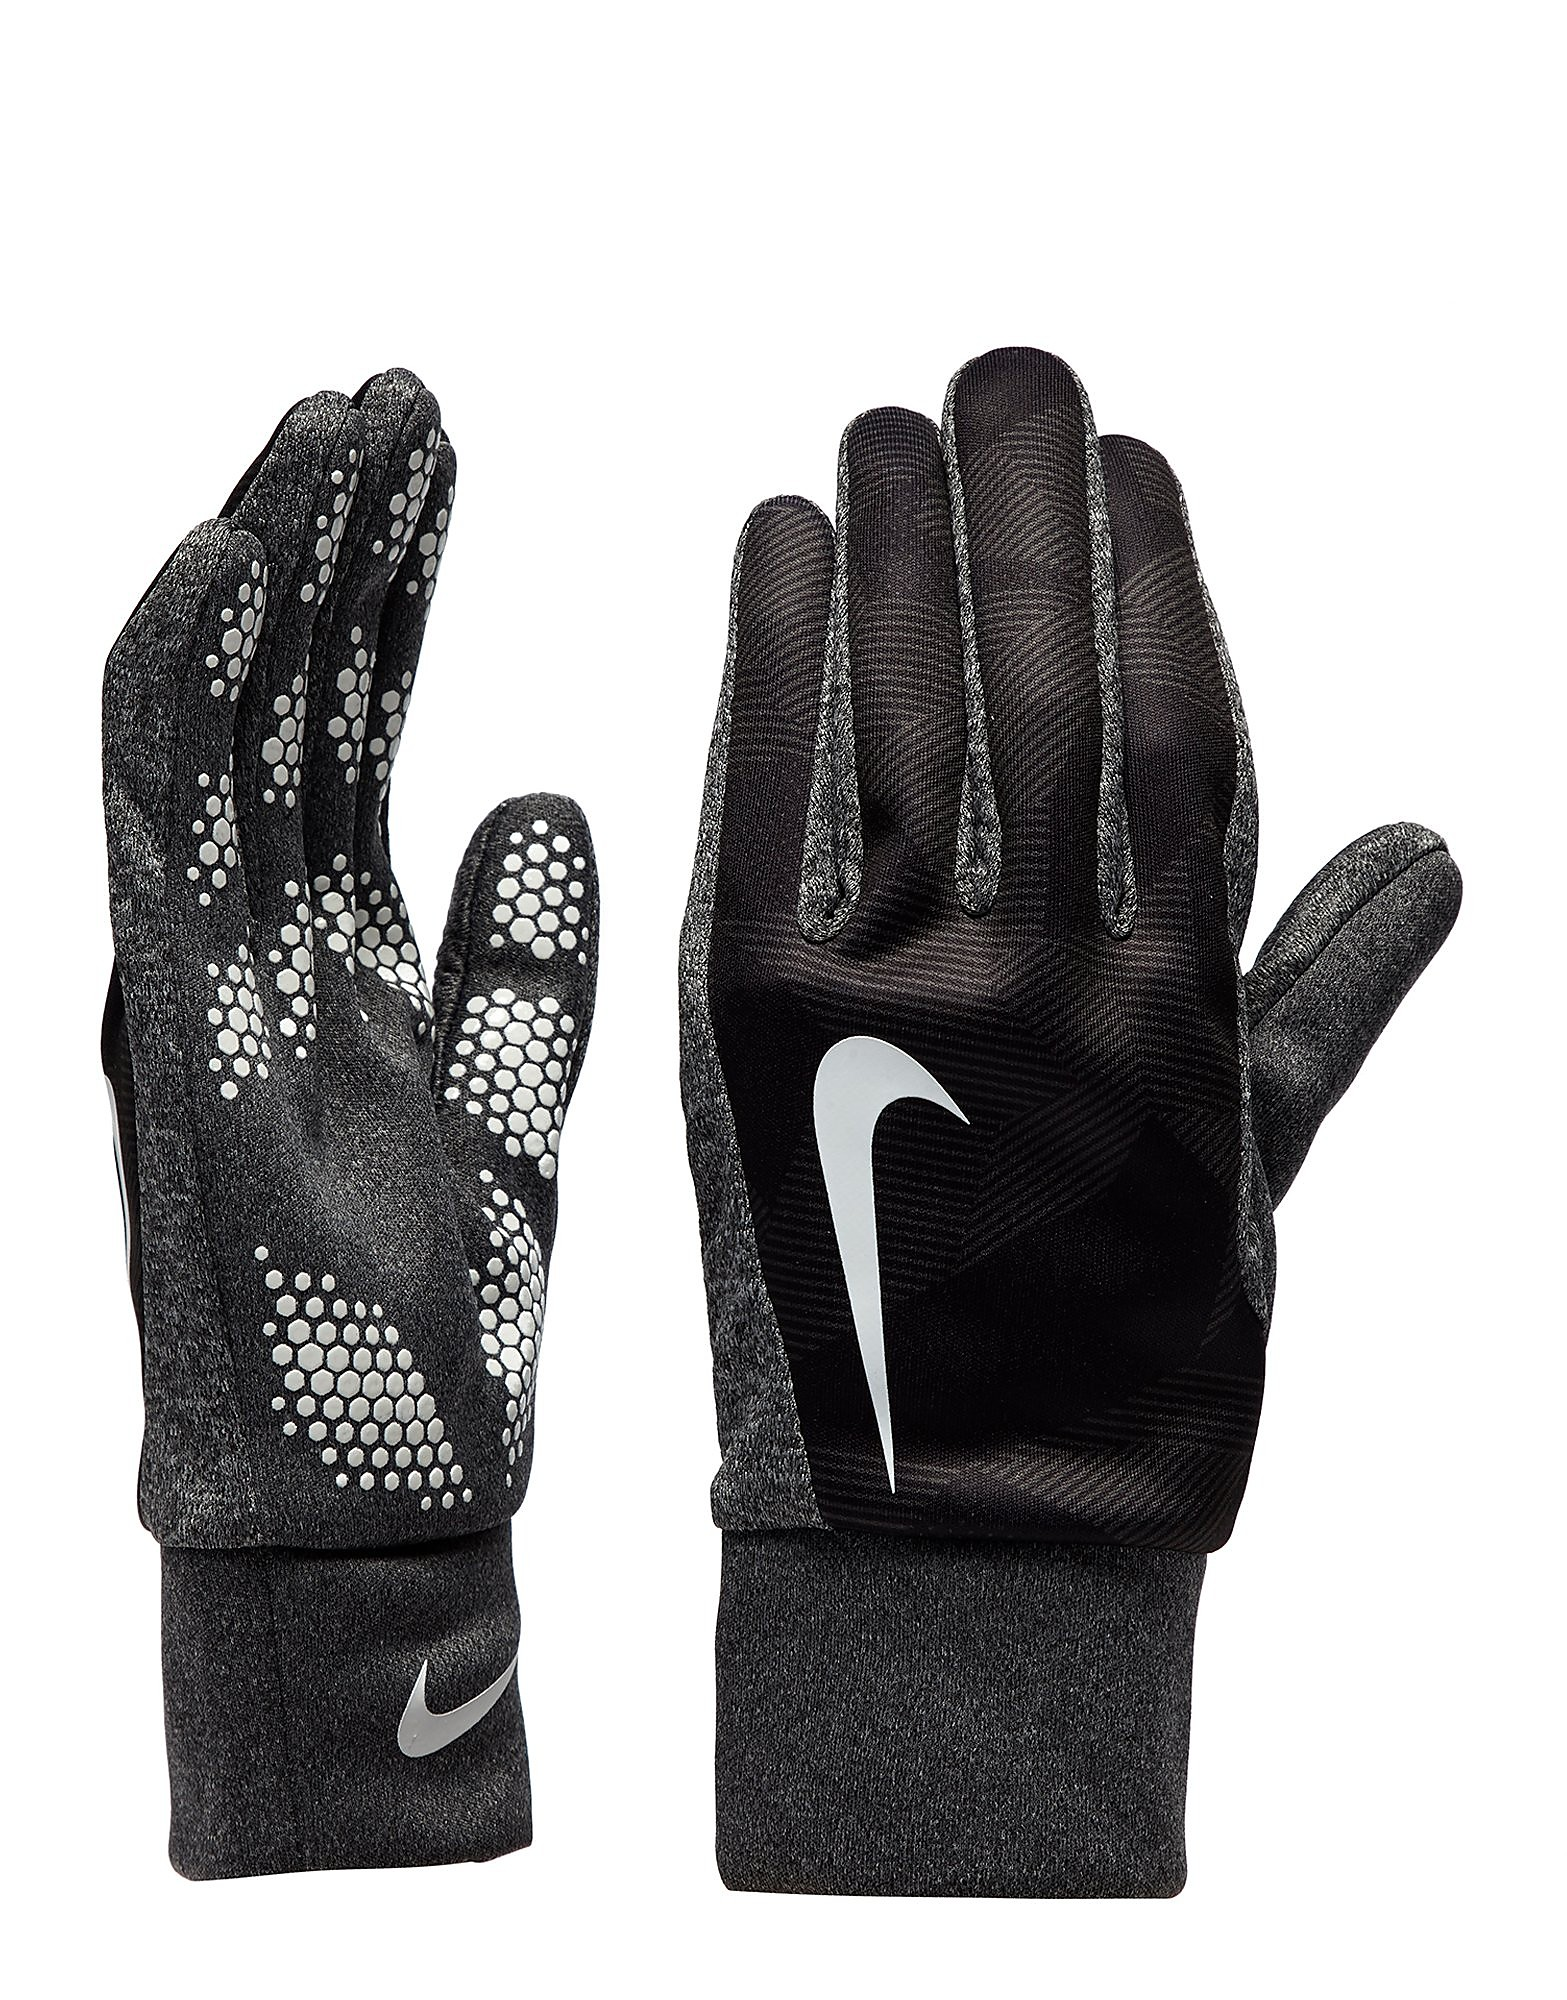 Nike Hyperwarm Gloves